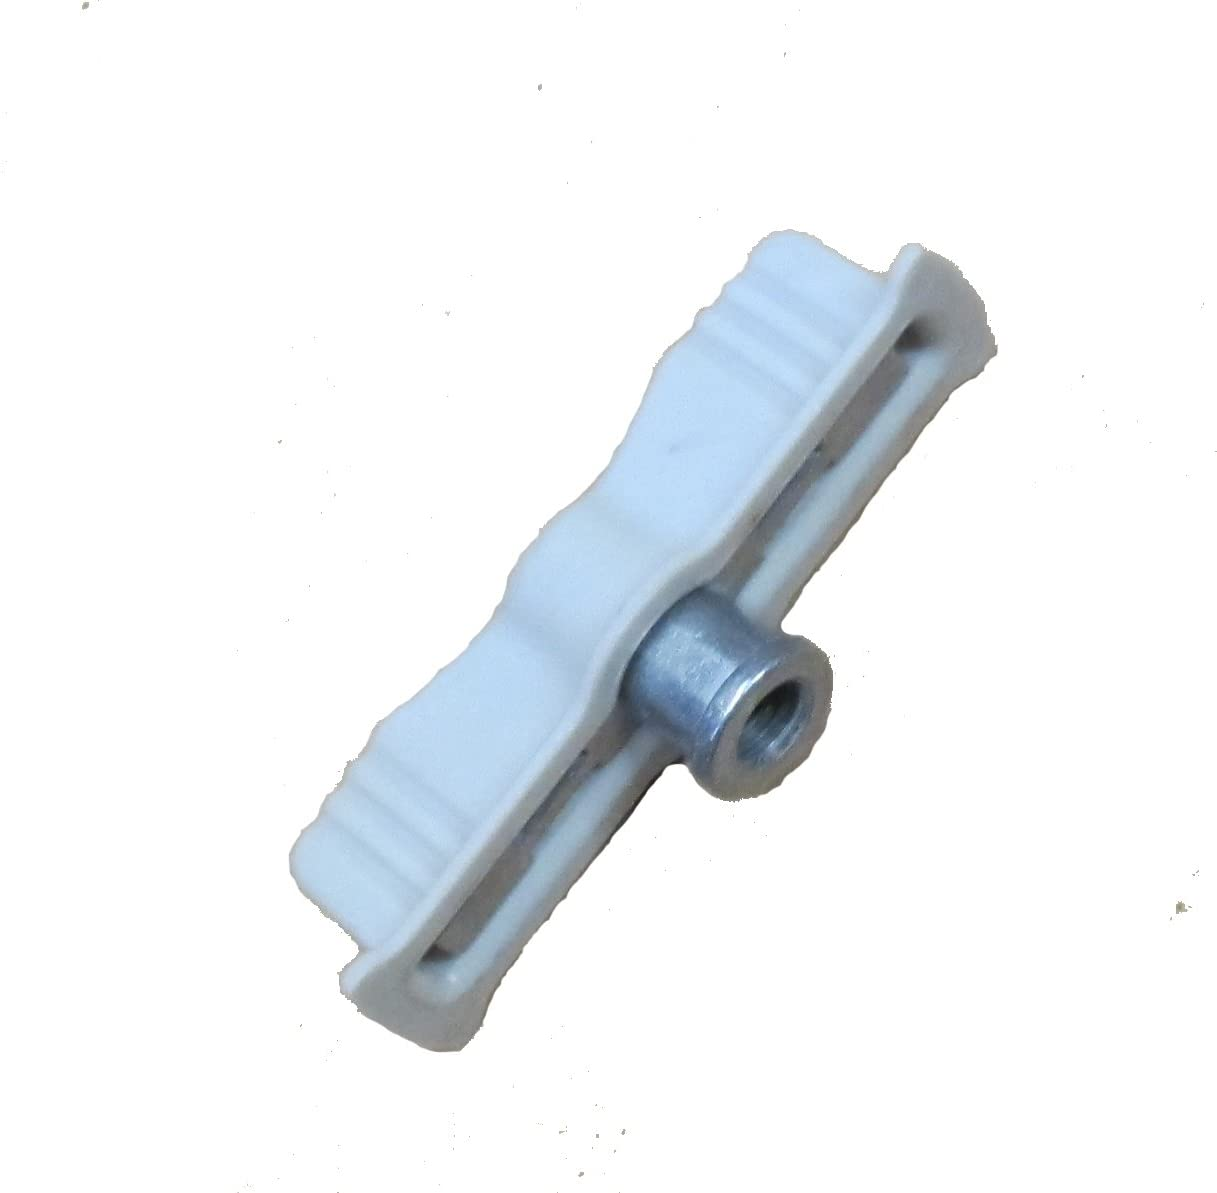 307505003 Tool-less Tension Nut Assembly replaces 678618002 Homelite & Ryobi 36cc-42cc chainsaws by Homelite